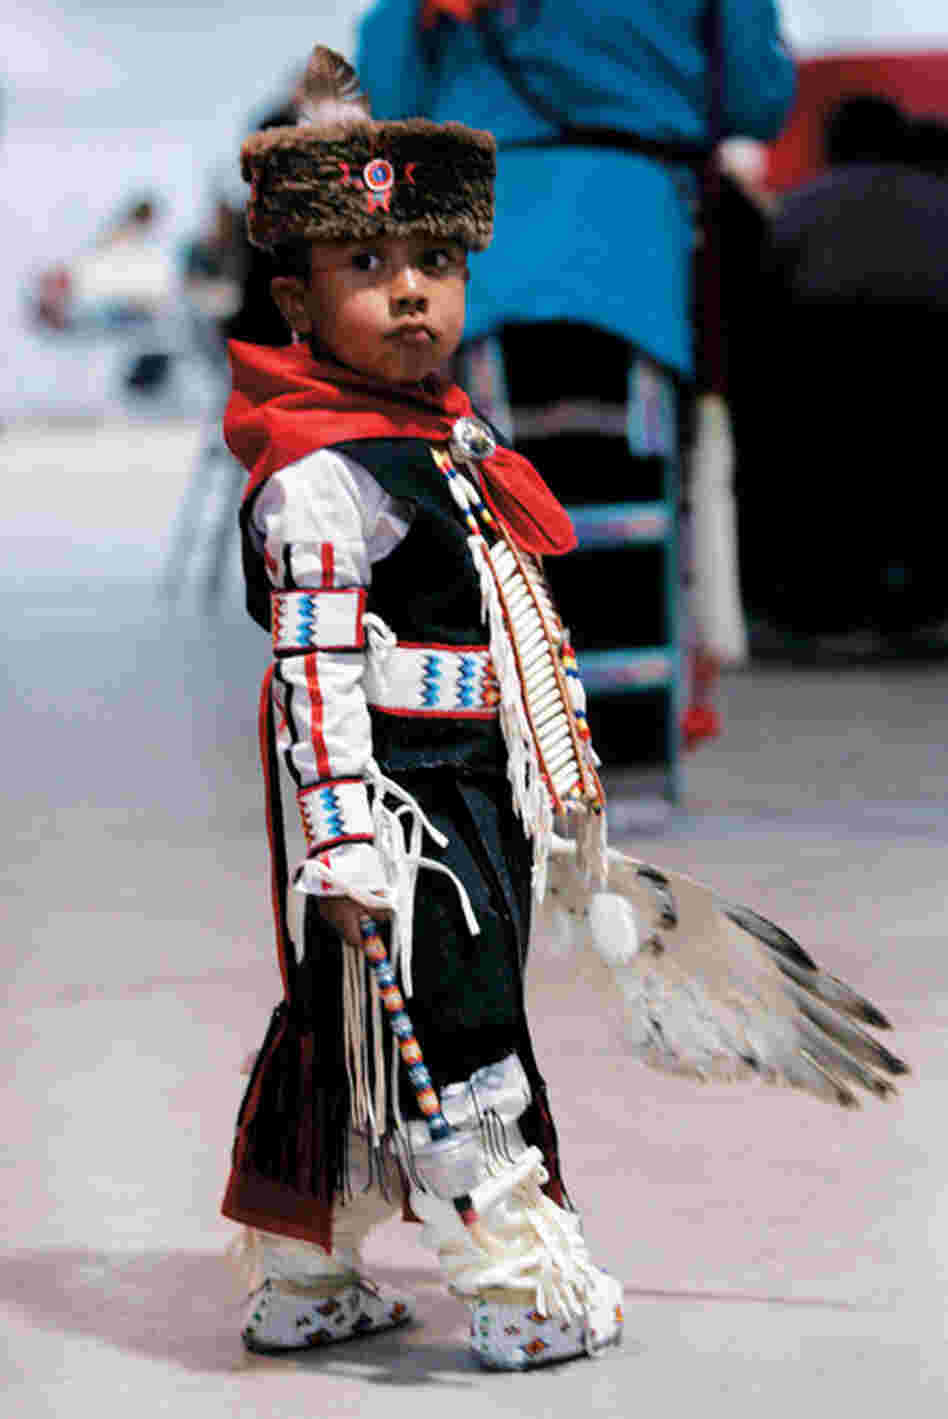 The Warrior Dance introduces young men to the warrior culture. Here, a boy in tribal costume dances in honor of Lt. Bill Cody Ayon.